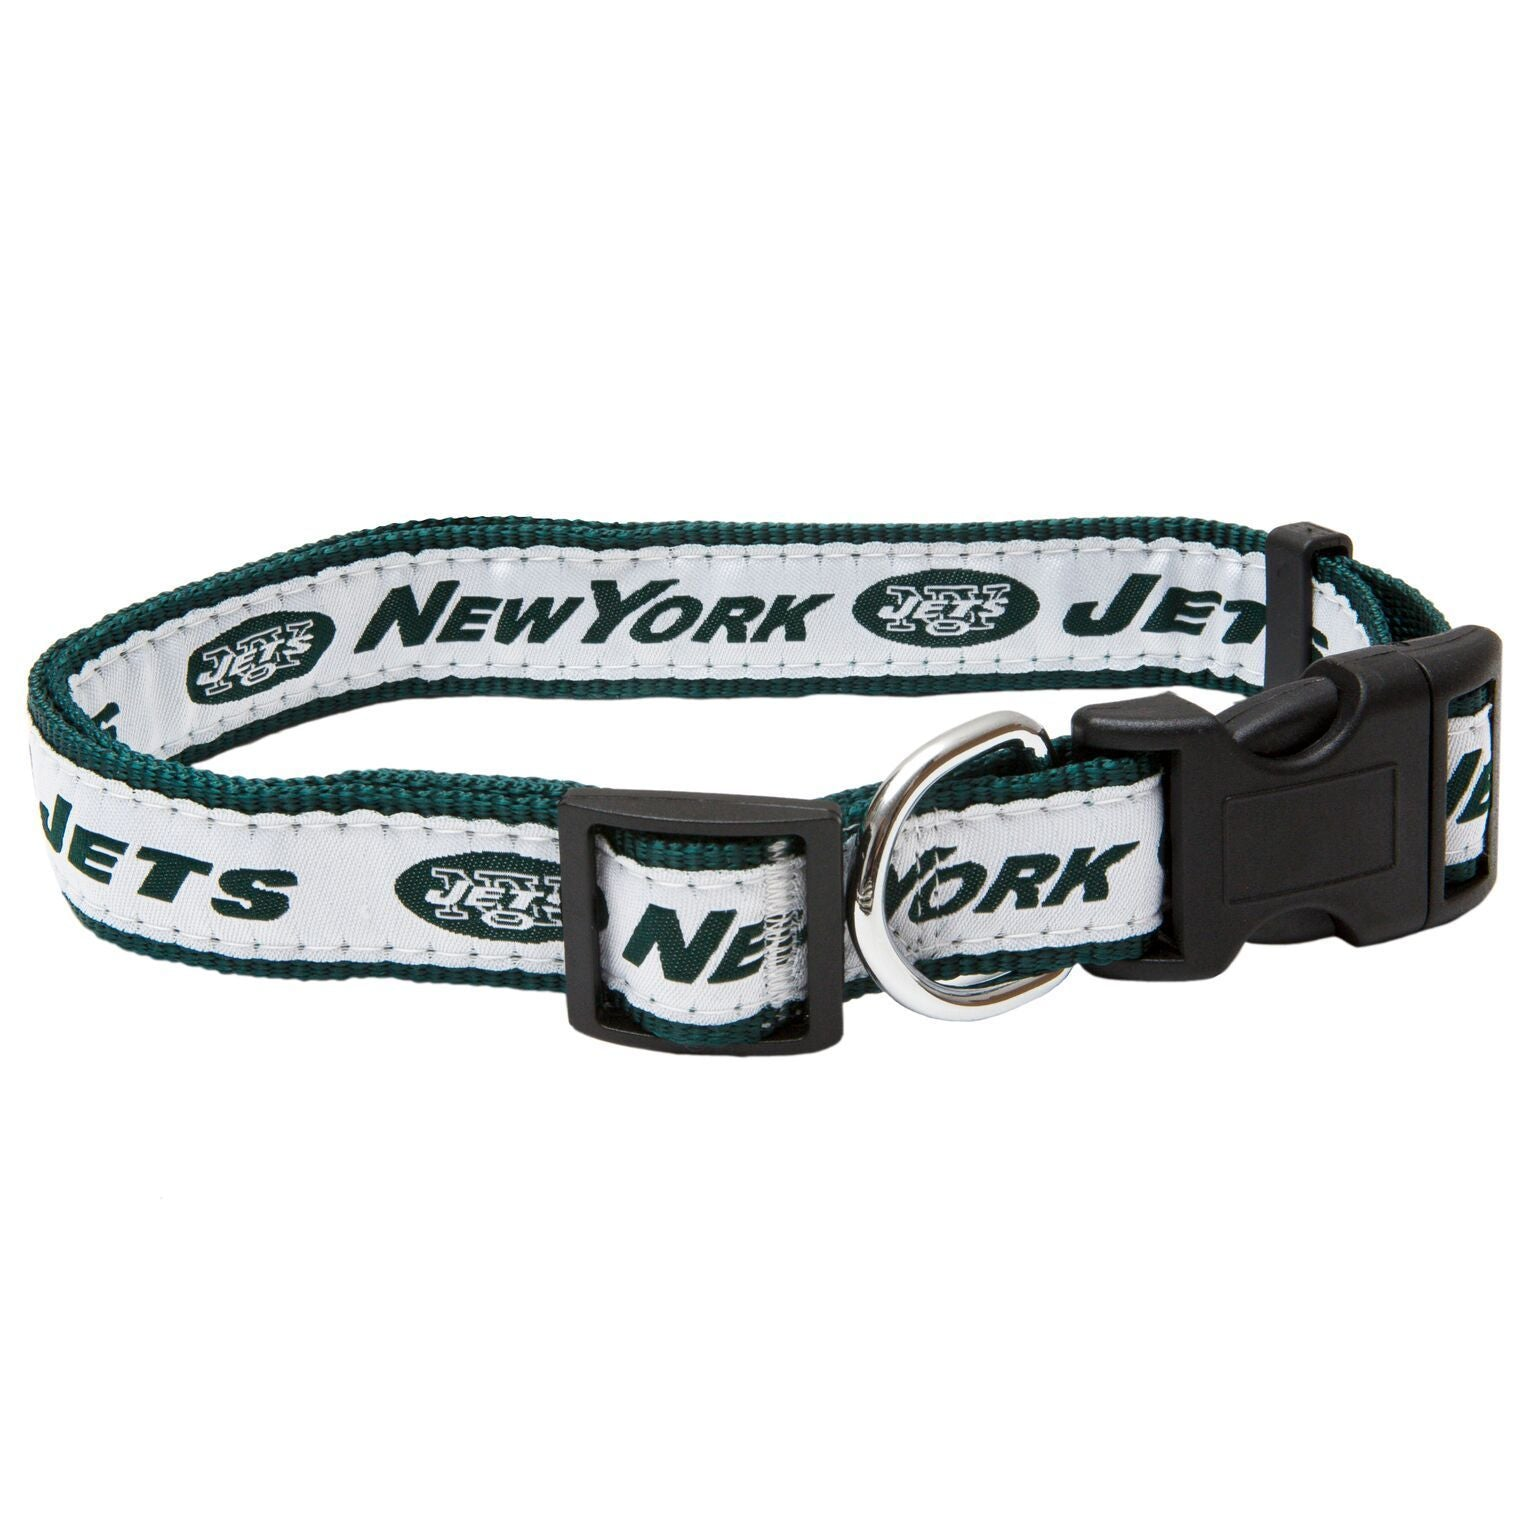 New York Jets Football Jersey Cheerleading Uniform Collar Leash - Jersey Champs - Custom Basketball, Baseball, Football & Hockey Jerseys